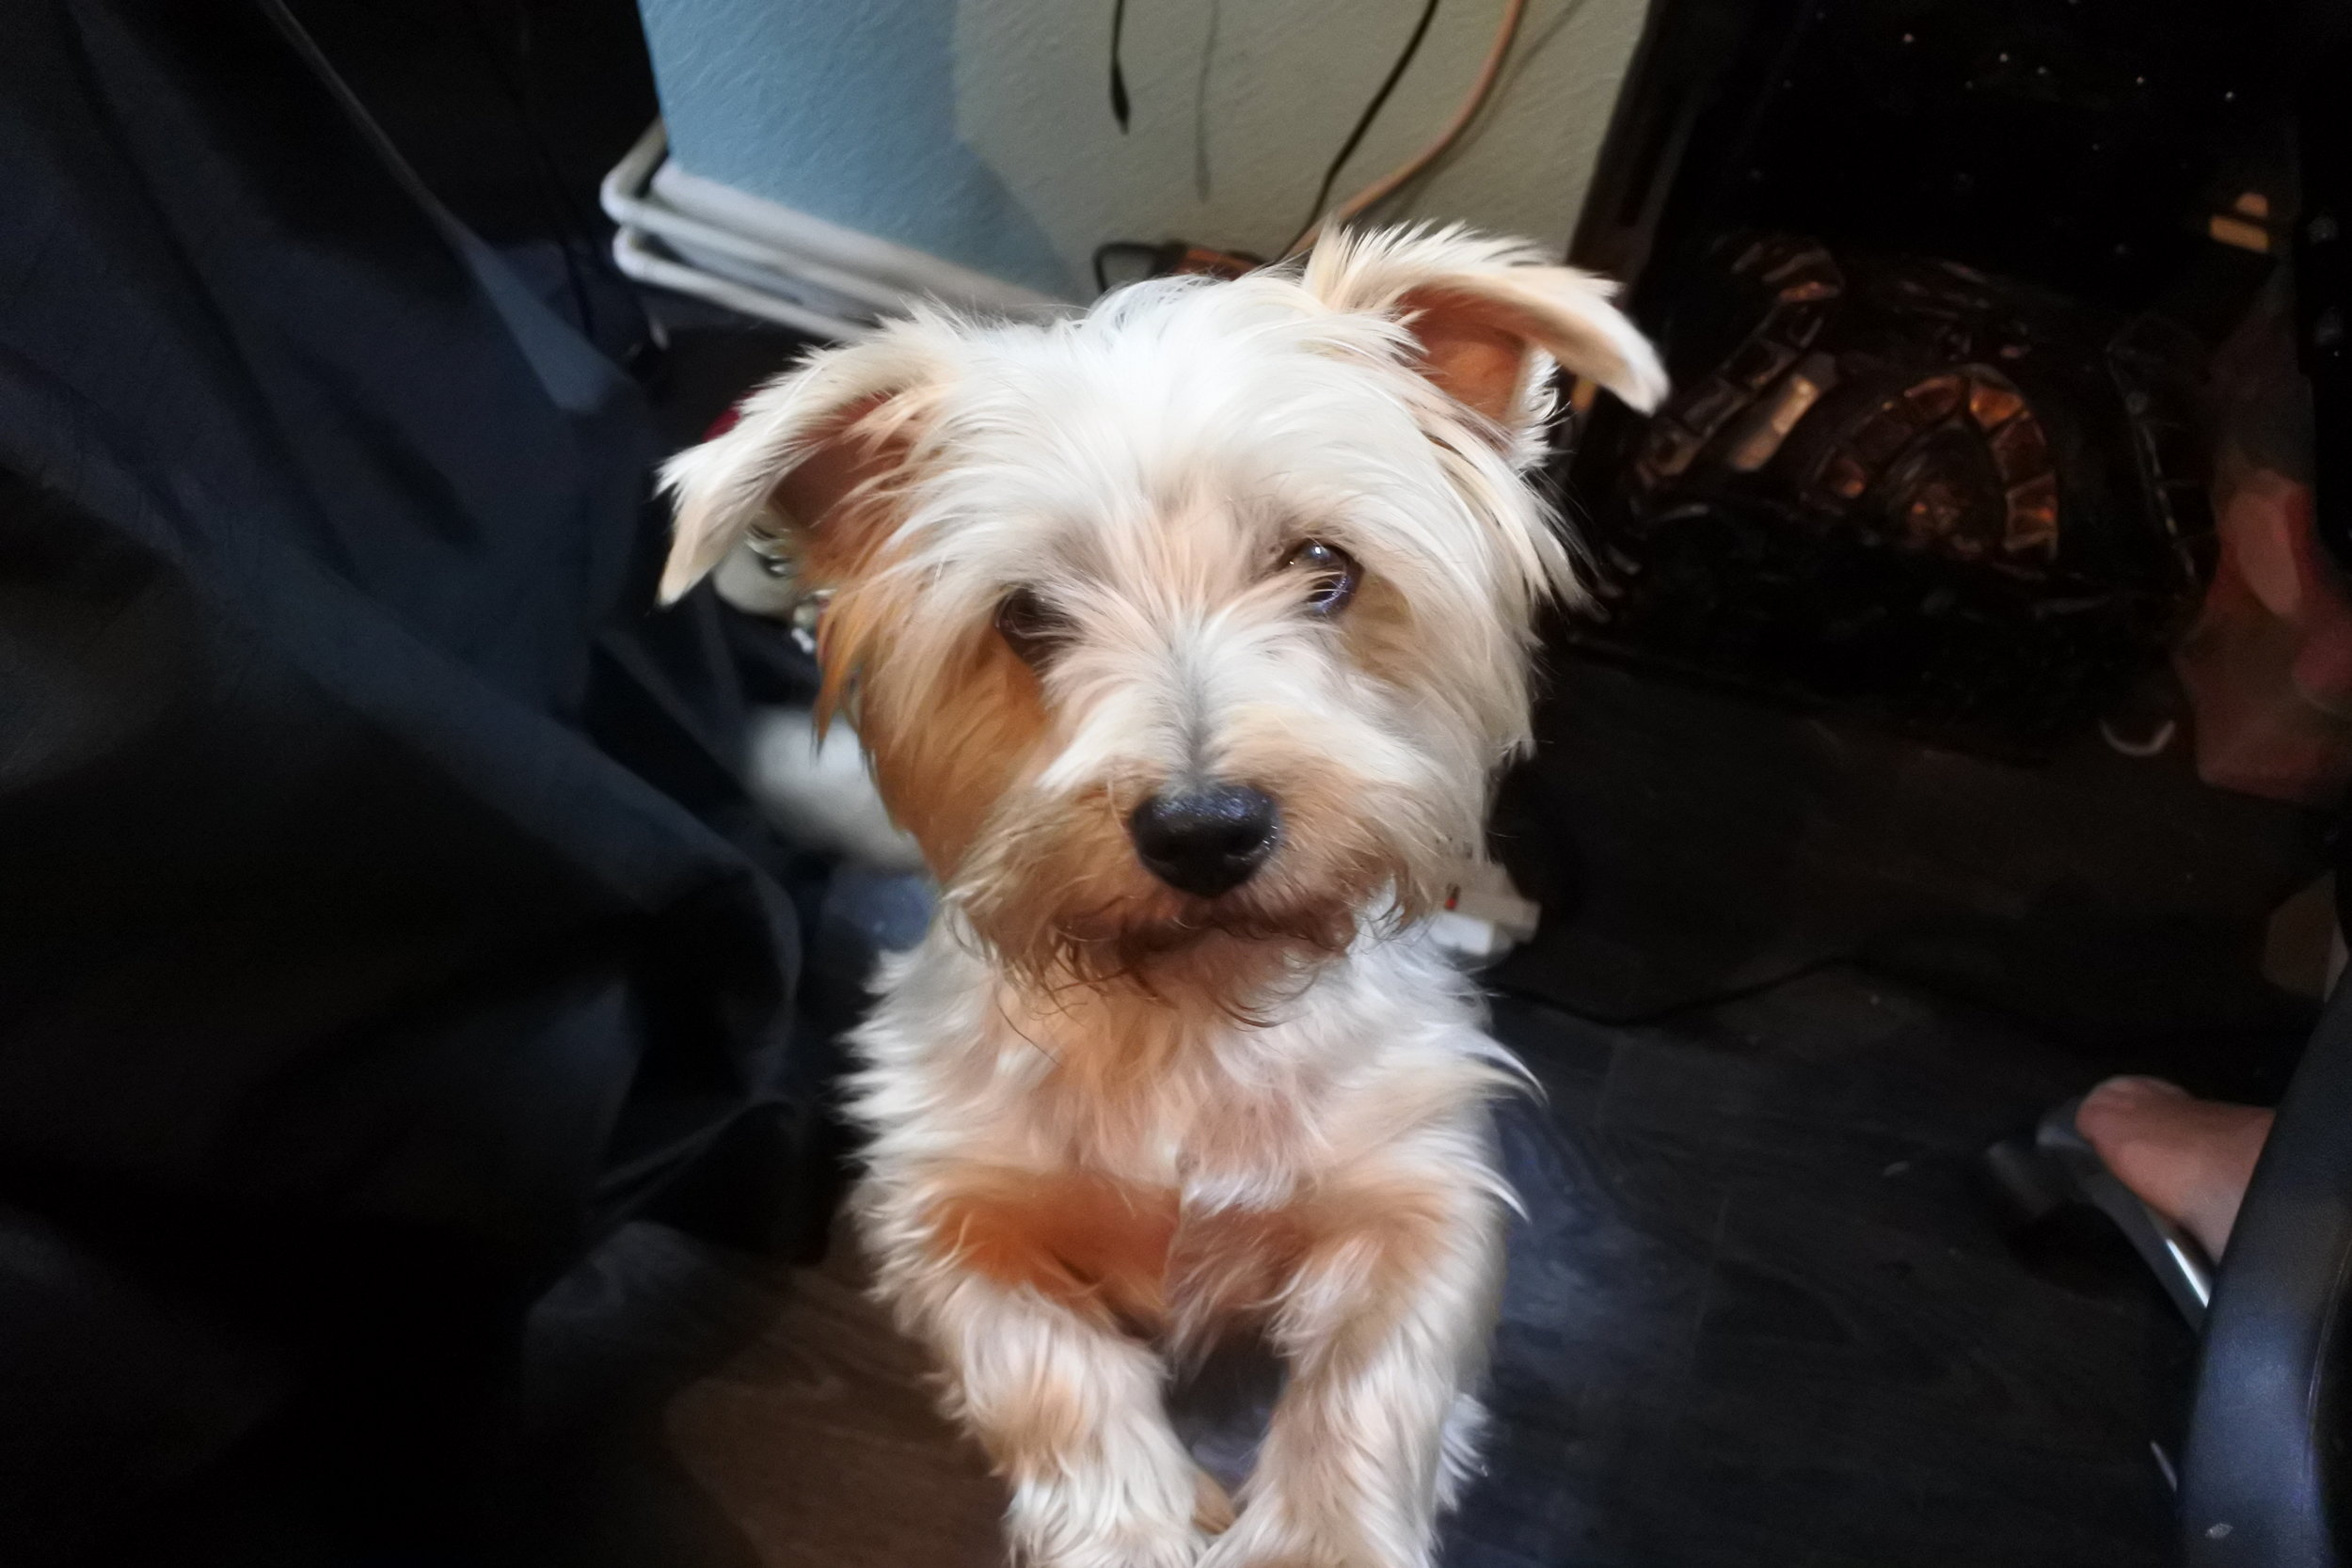 Meet Barney. Adelaide and Wilma's beloved dog who loves to help out in the sewing home. He wishes he was a West Highland Terrier and could wear tartan.